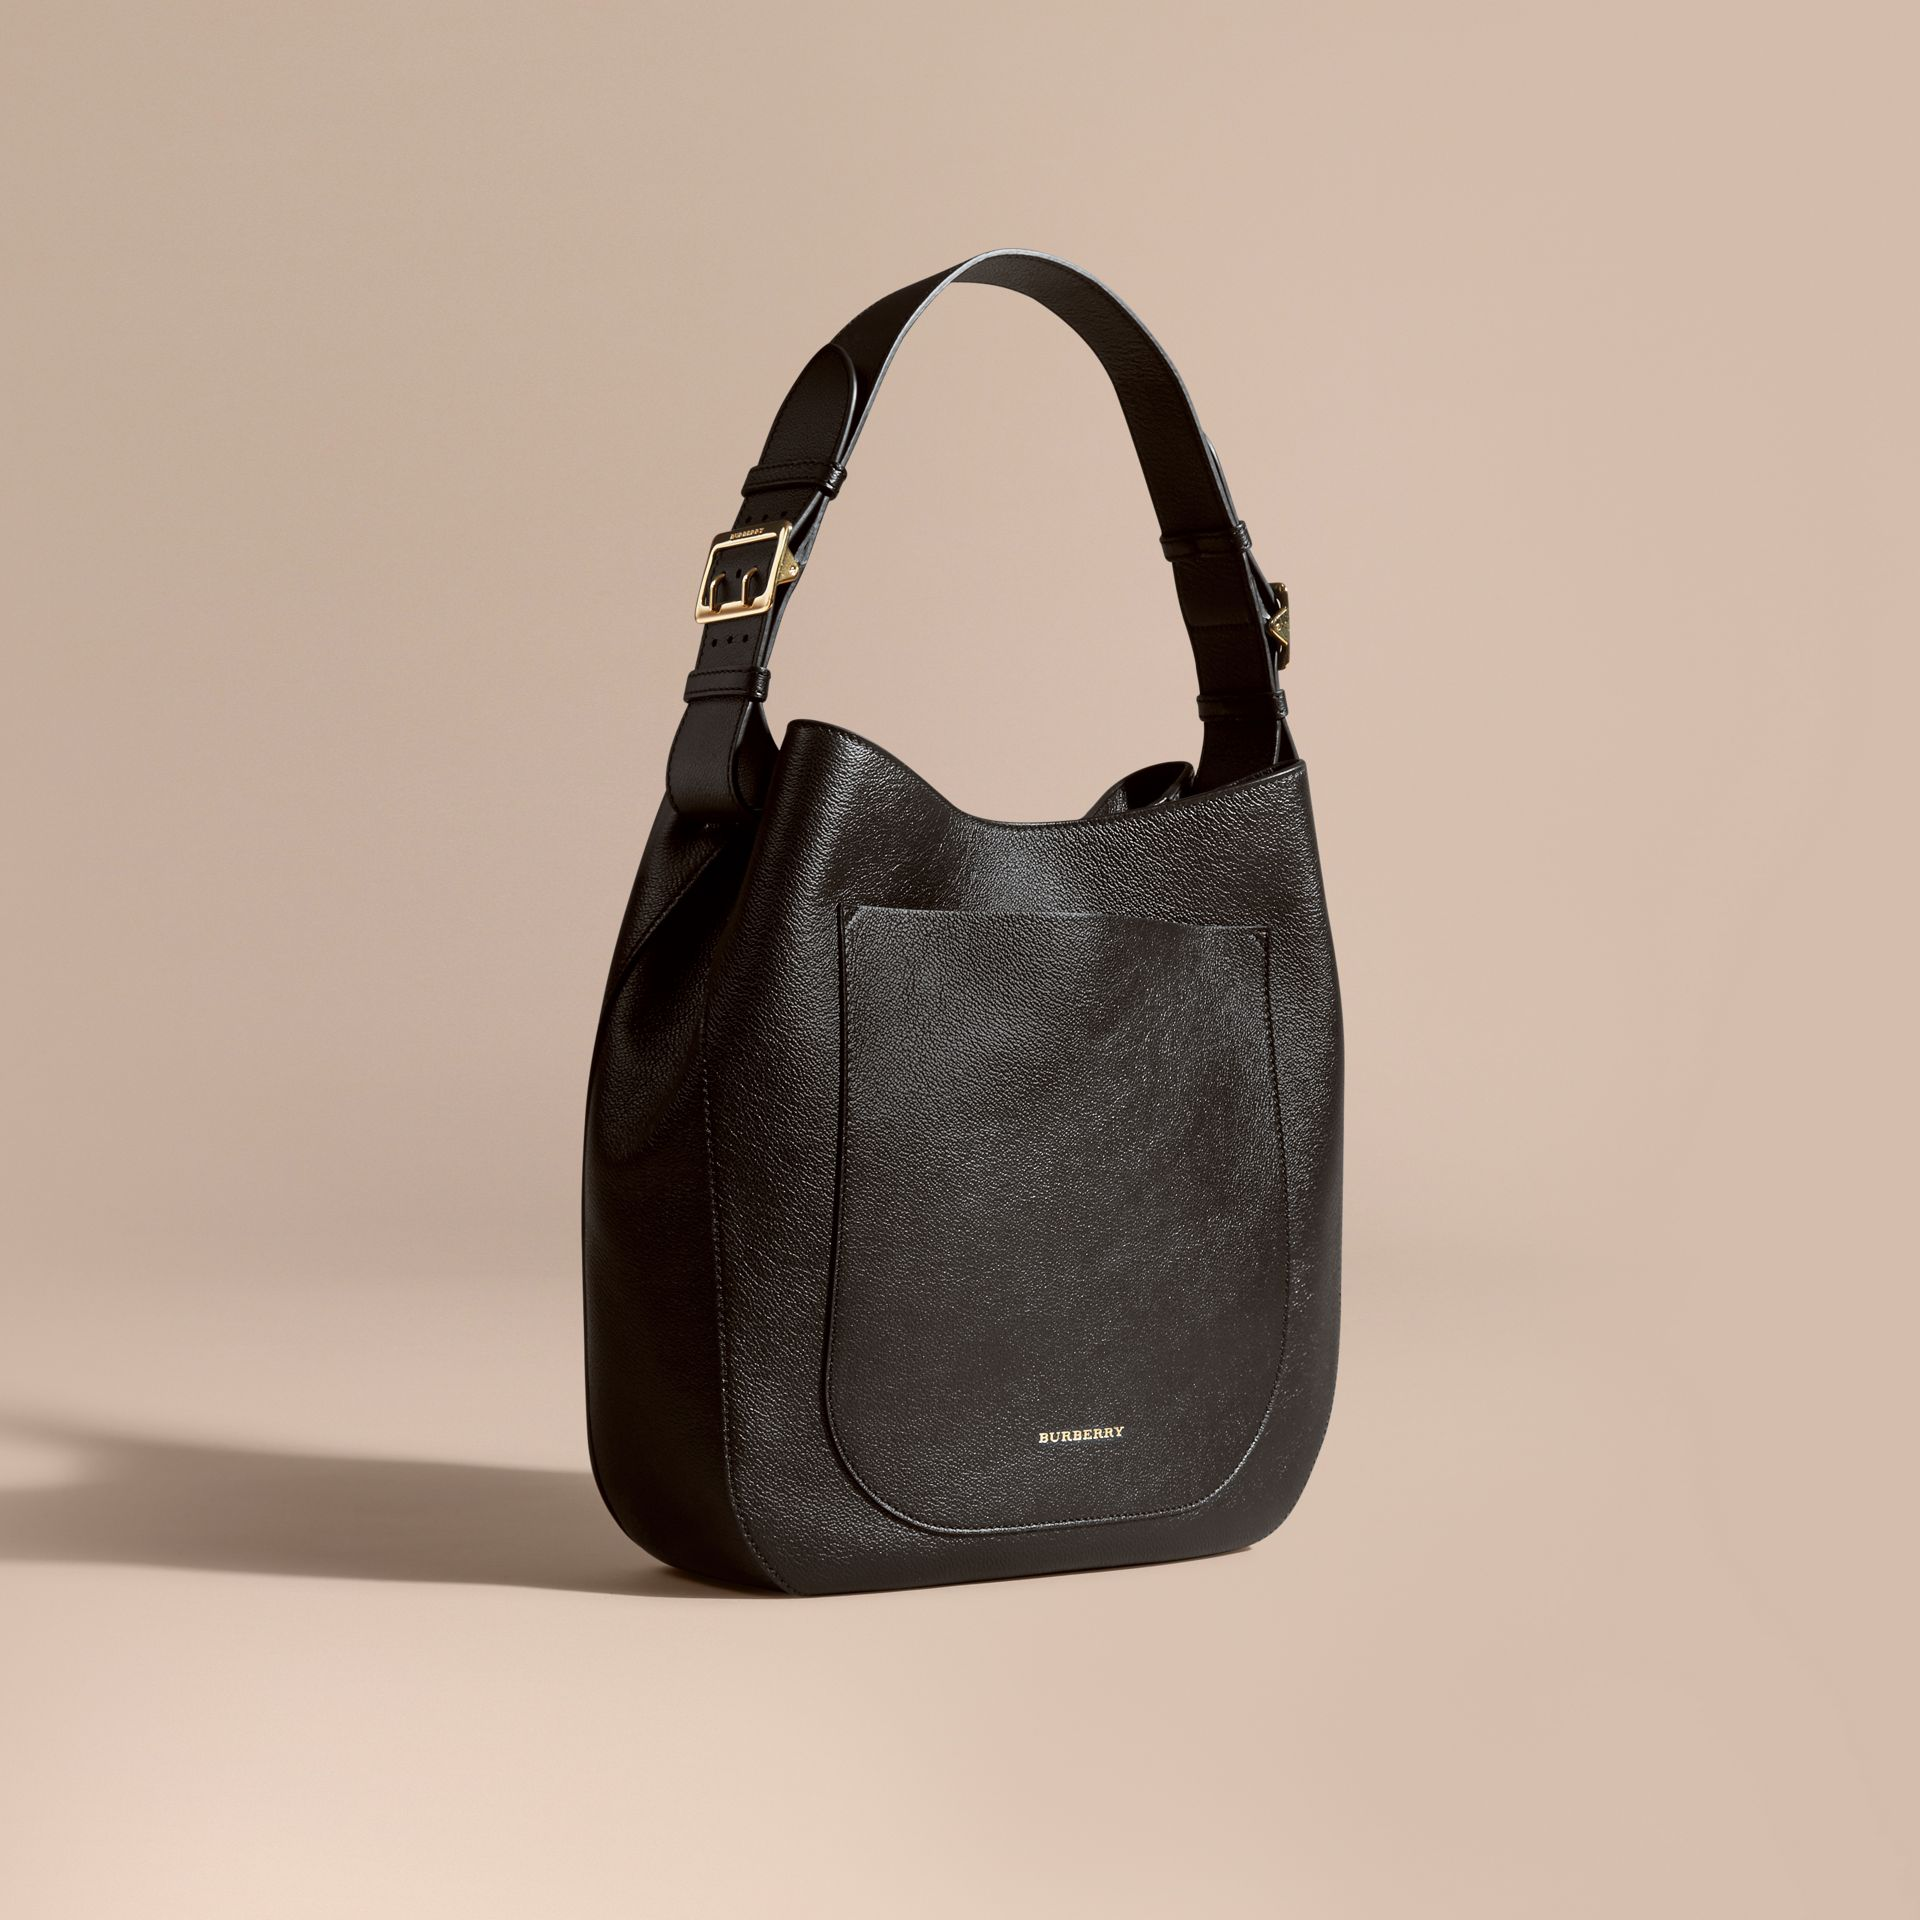 Textured Leather Shoulder Bag in Black - gallery image 1